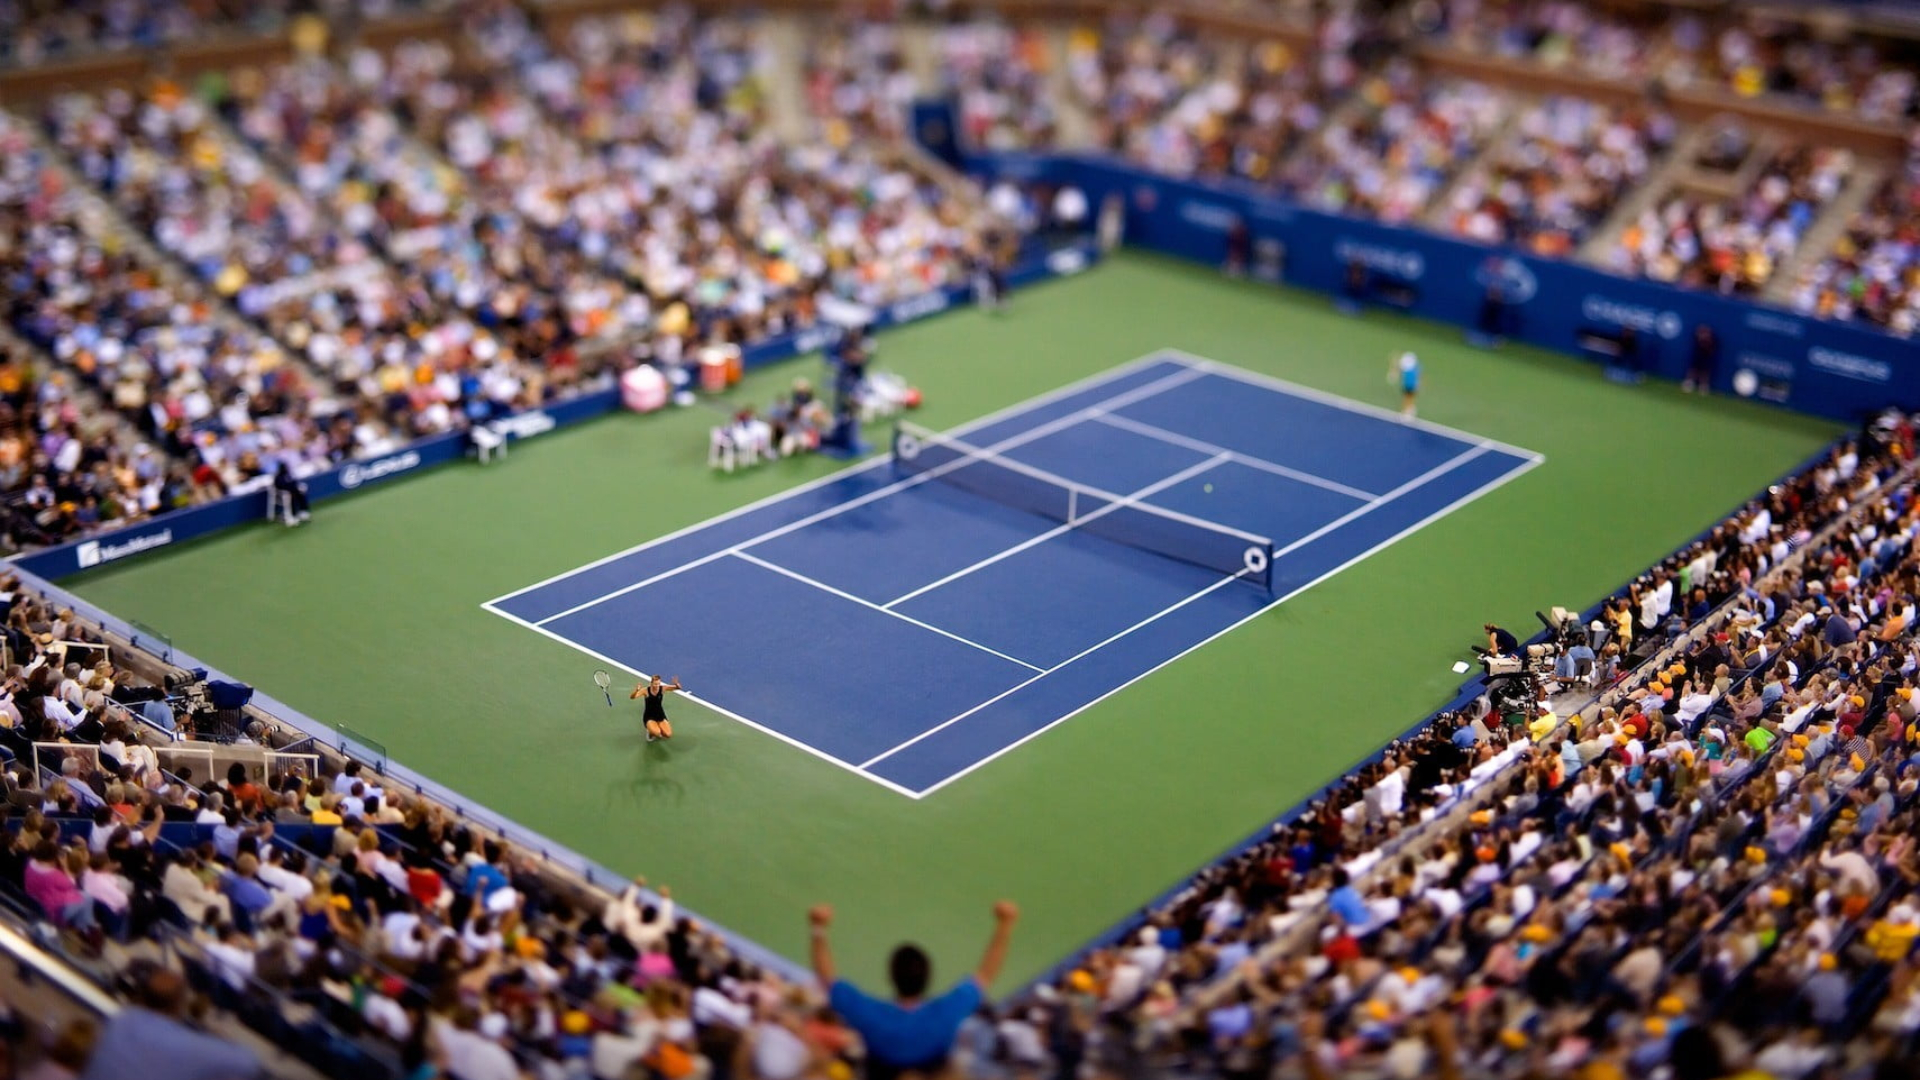 tennis background images